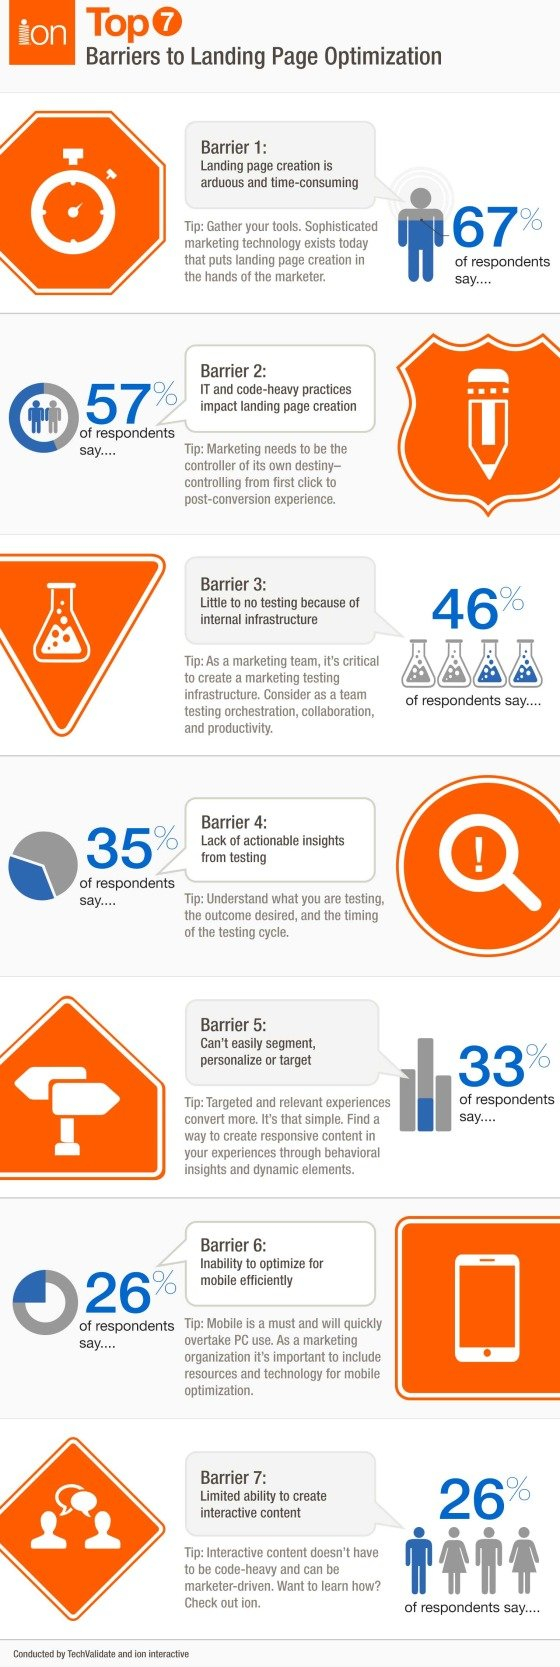 top 7 barriers to landing page optimization #infographic